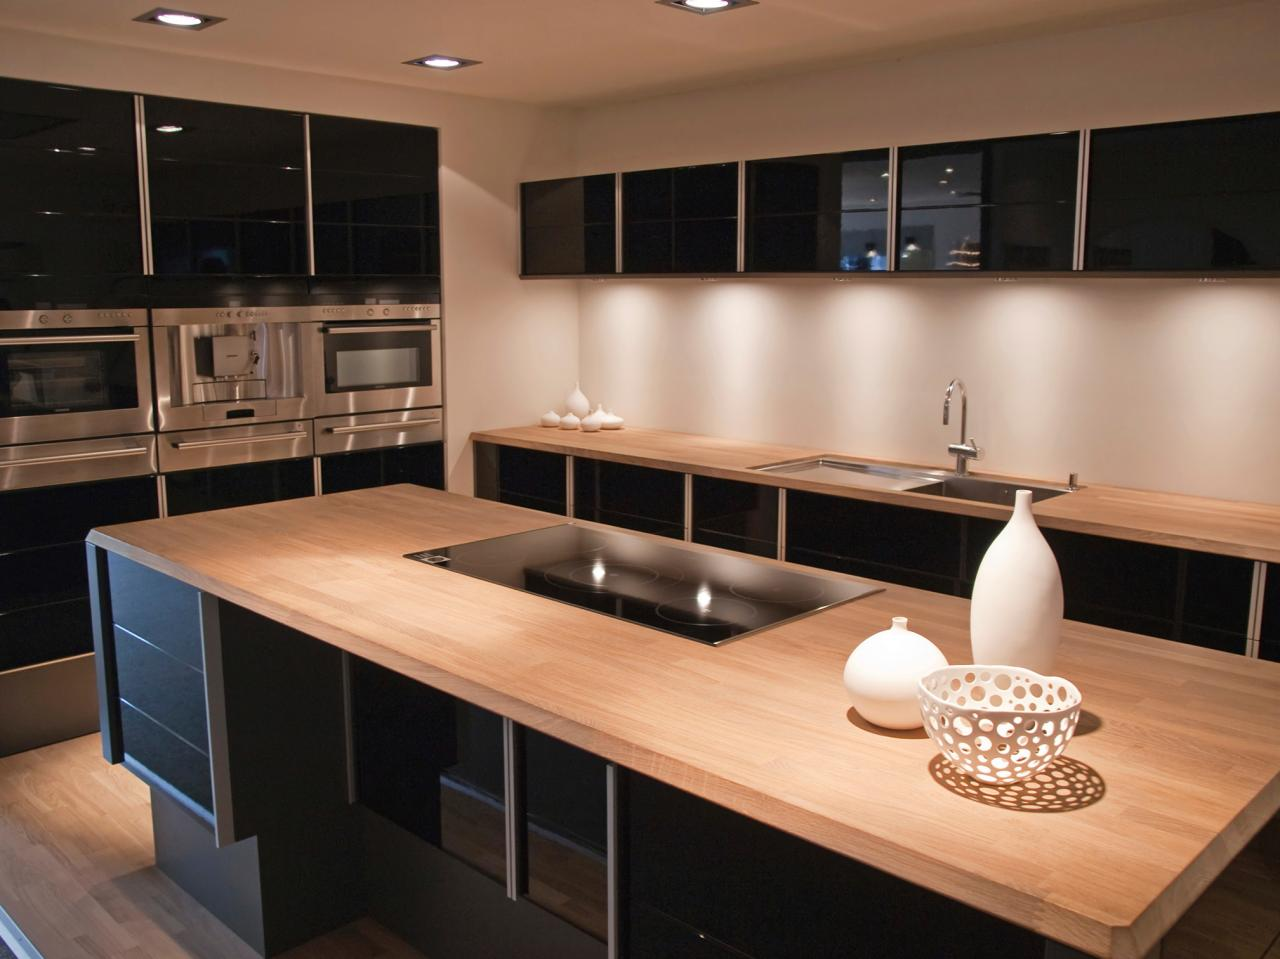 Captivating Kitchen Furniture Using Modern Cabinet plus Stove and Microwave